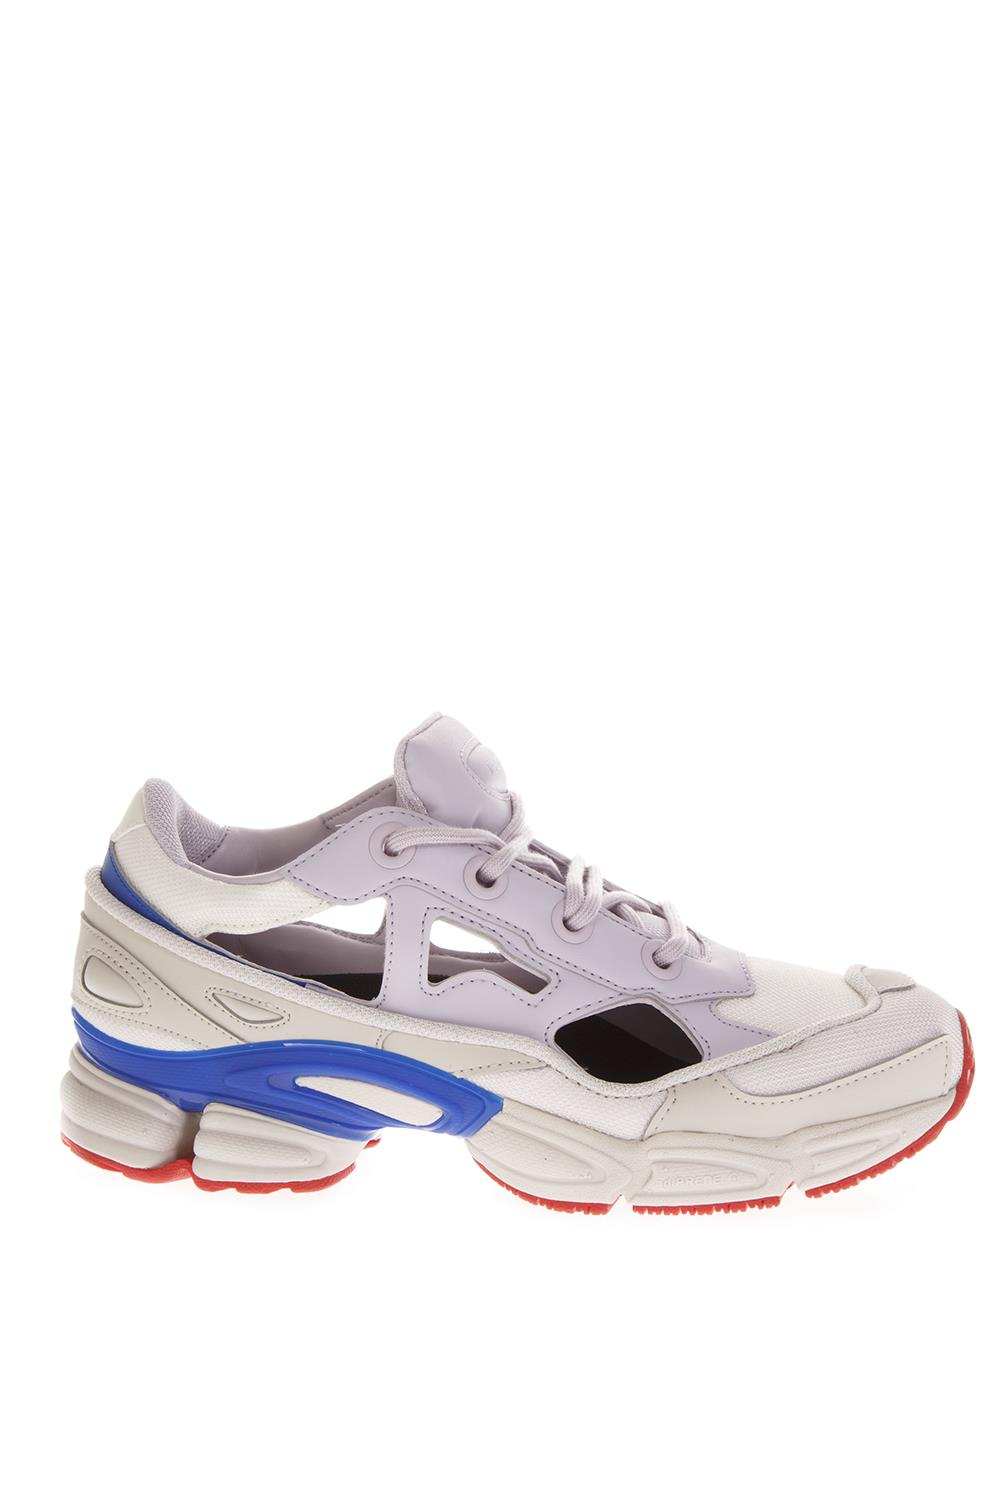 differently d01d0 13eaa WHITE REPLICANT OZWEEGO SNEAKERS BY RAF SIMONS FW 2018